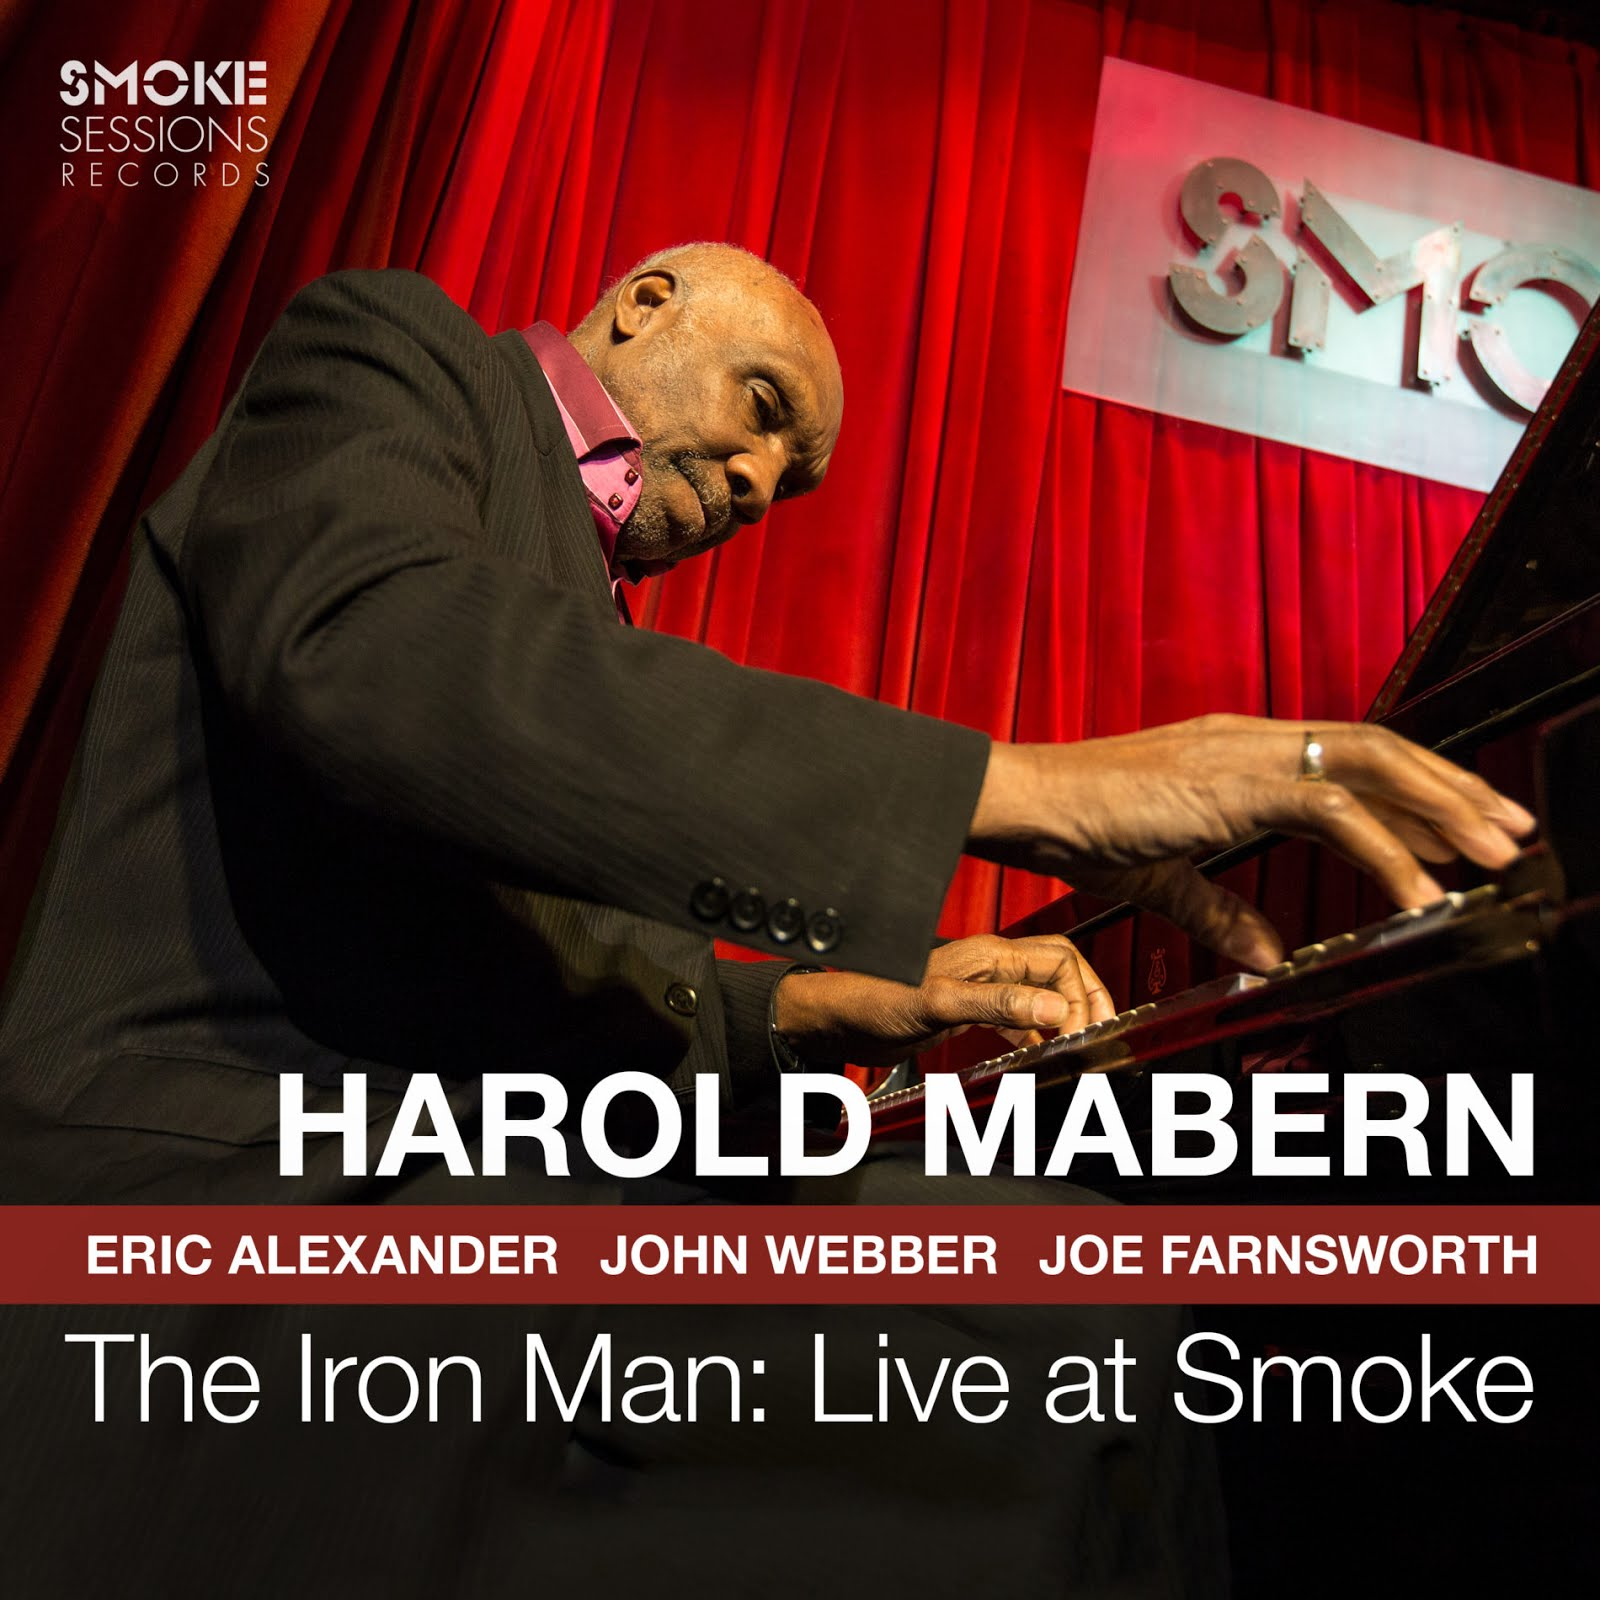 HAROLD MABERN: THE IRON MAN